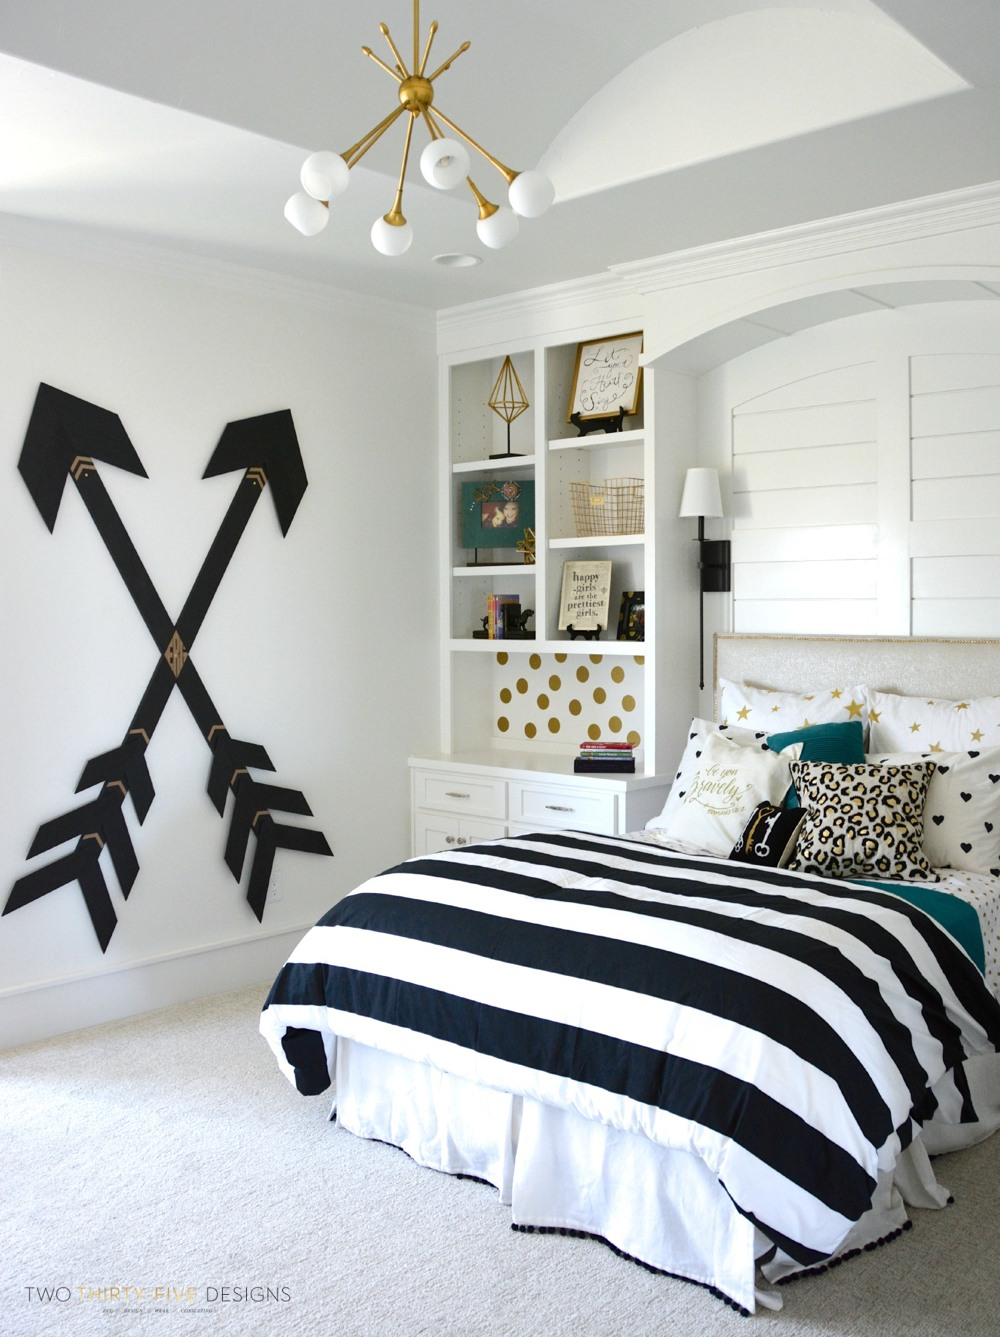 pottery barn teen girl bedroom with wooden wall arrows - Teen Girl Bedroom Ideas